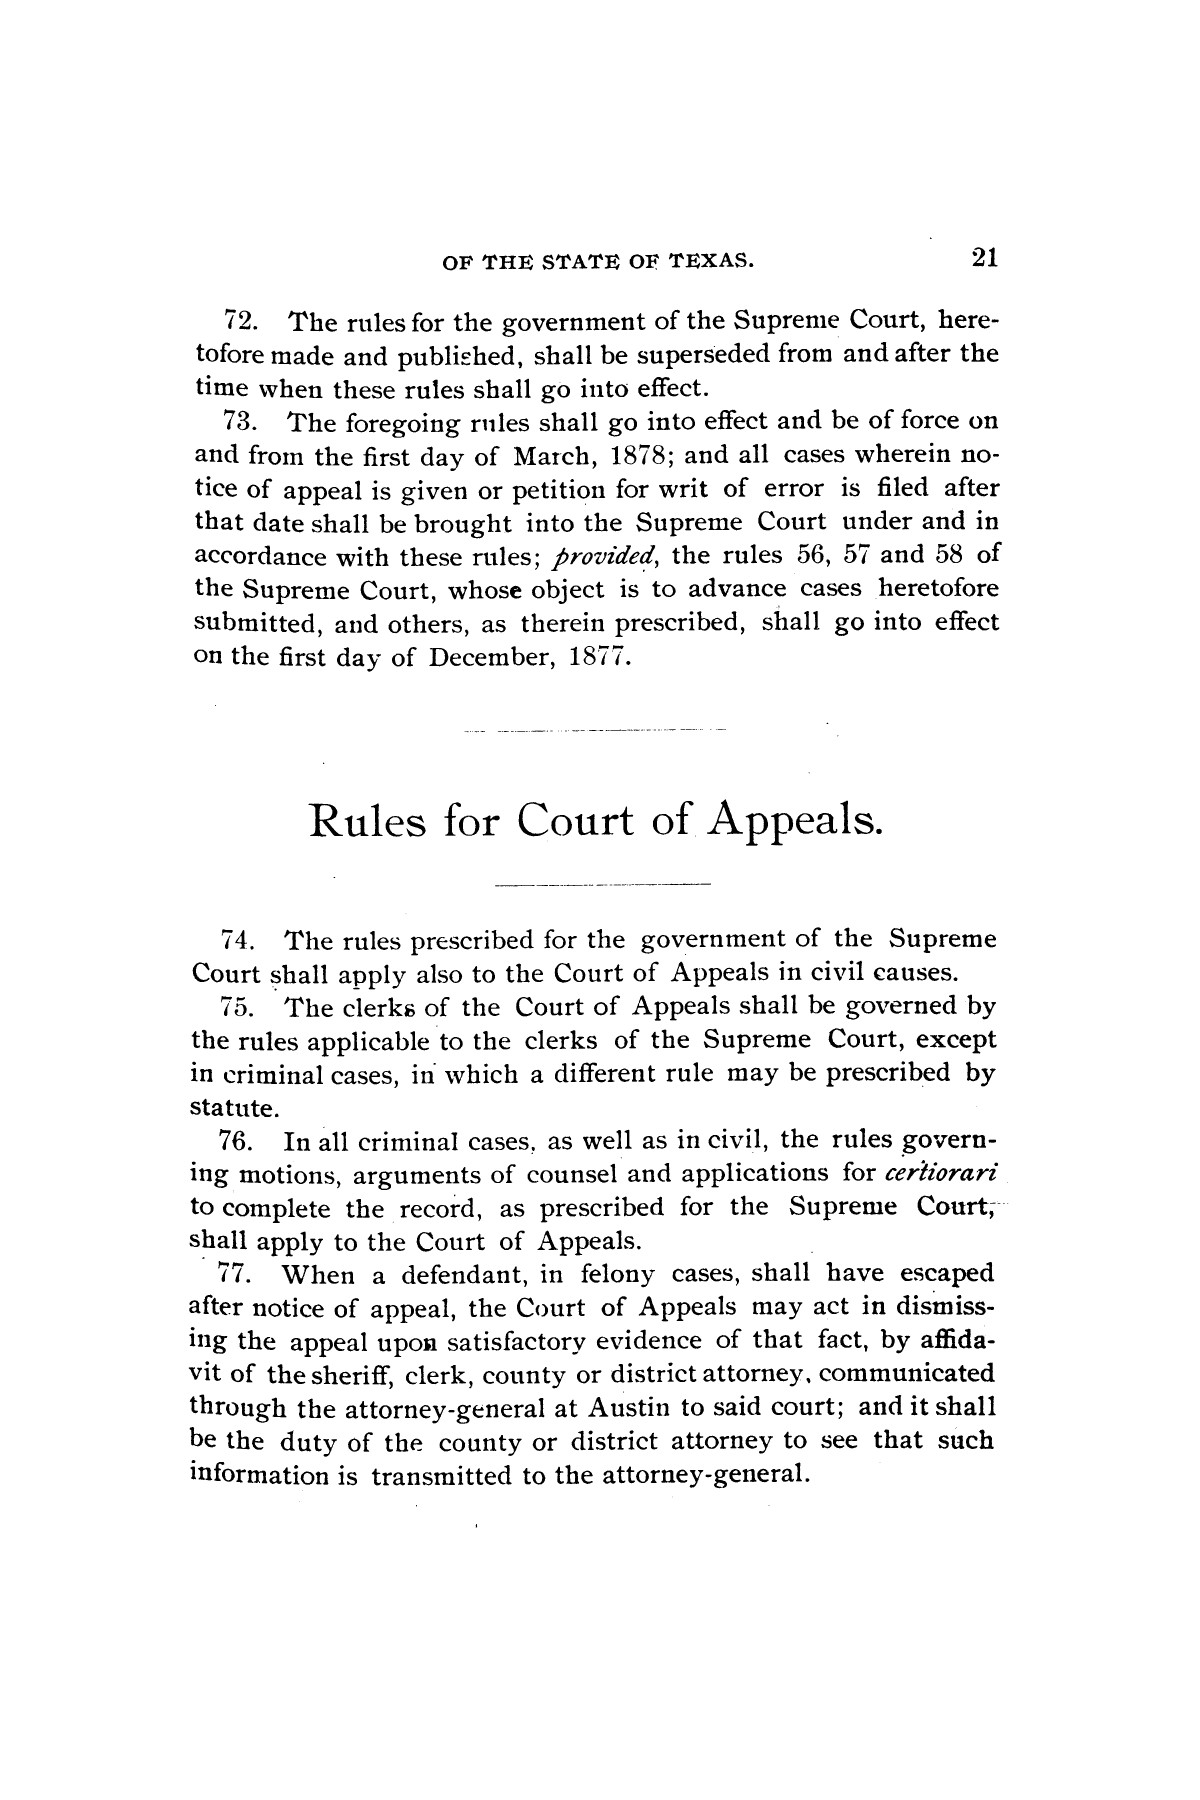 Rules for the courts of Texas: adopted by order of the Supreme Court at Tyler on the first day of December, A.D. 1877: together with amendments thereto at various times up to the close of the Austin term, A.D. 1890                                                                                                      [Sequence #]: 23 of 64